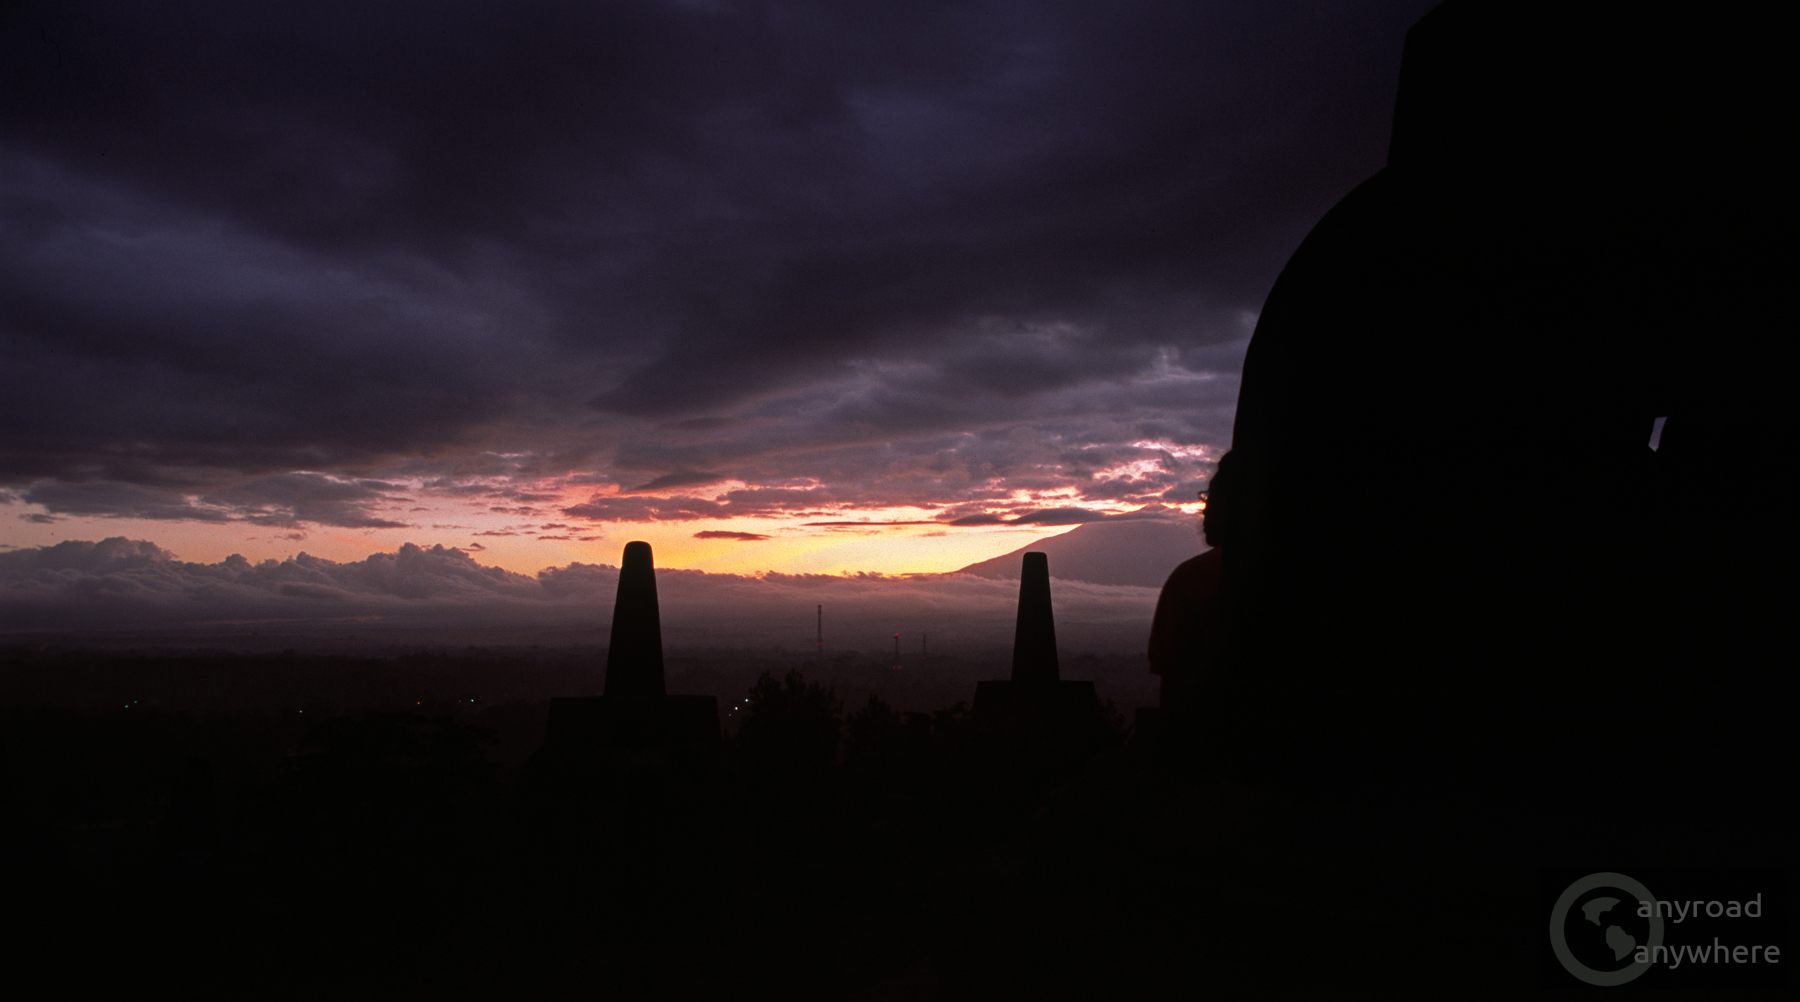 The sun rises in Borobudur